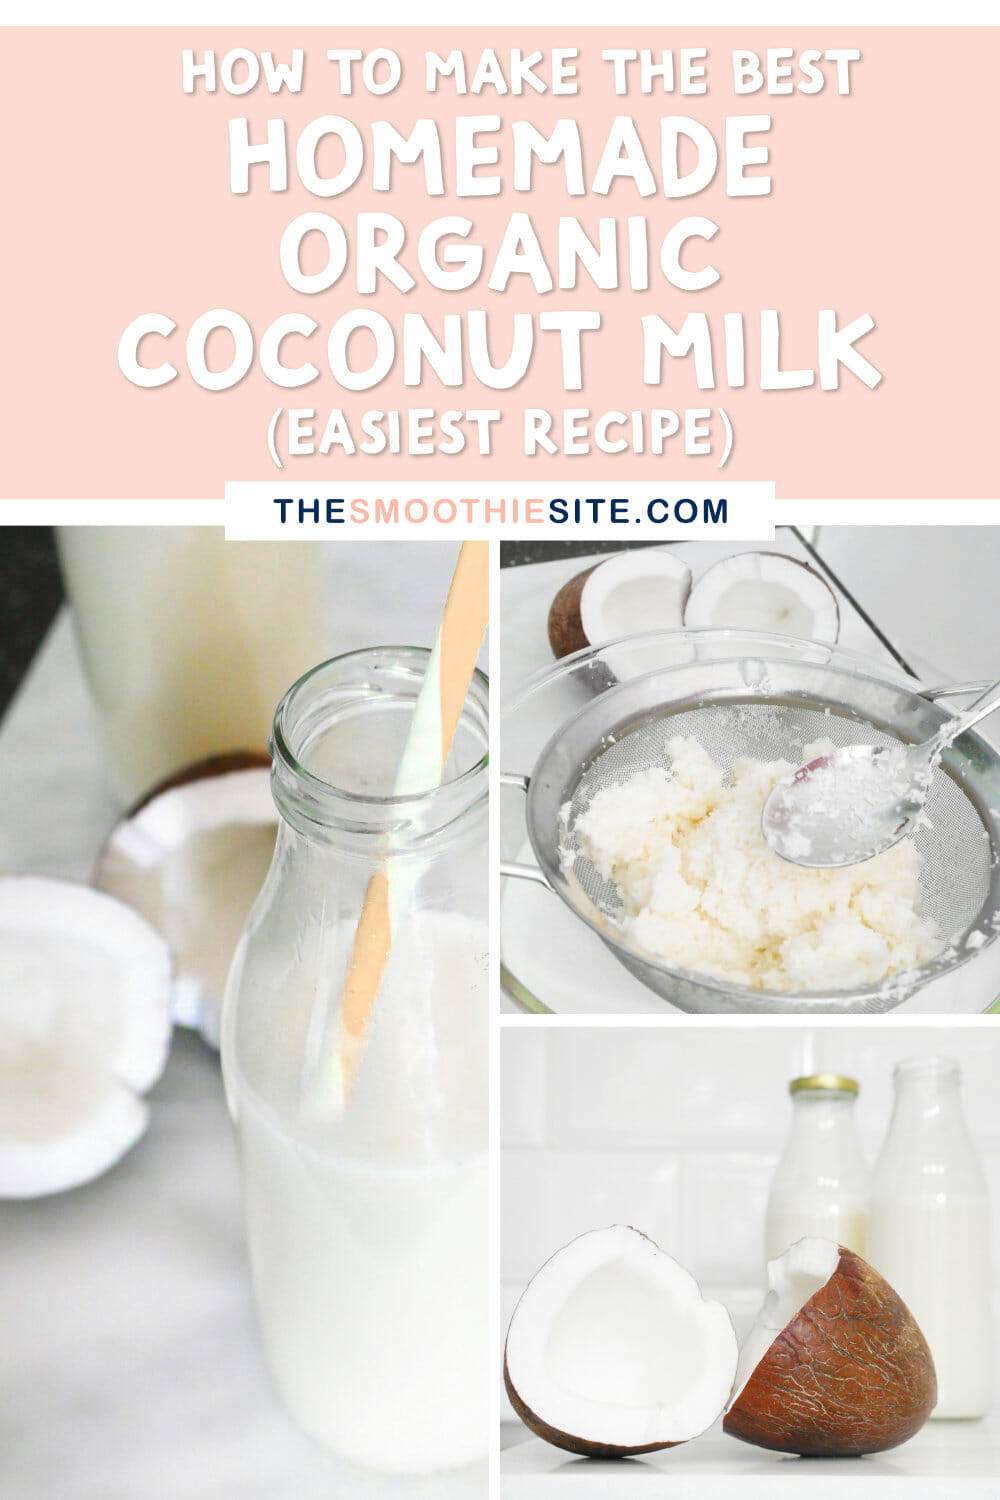 How to make the best homemade organic coconut milk easiest recipe